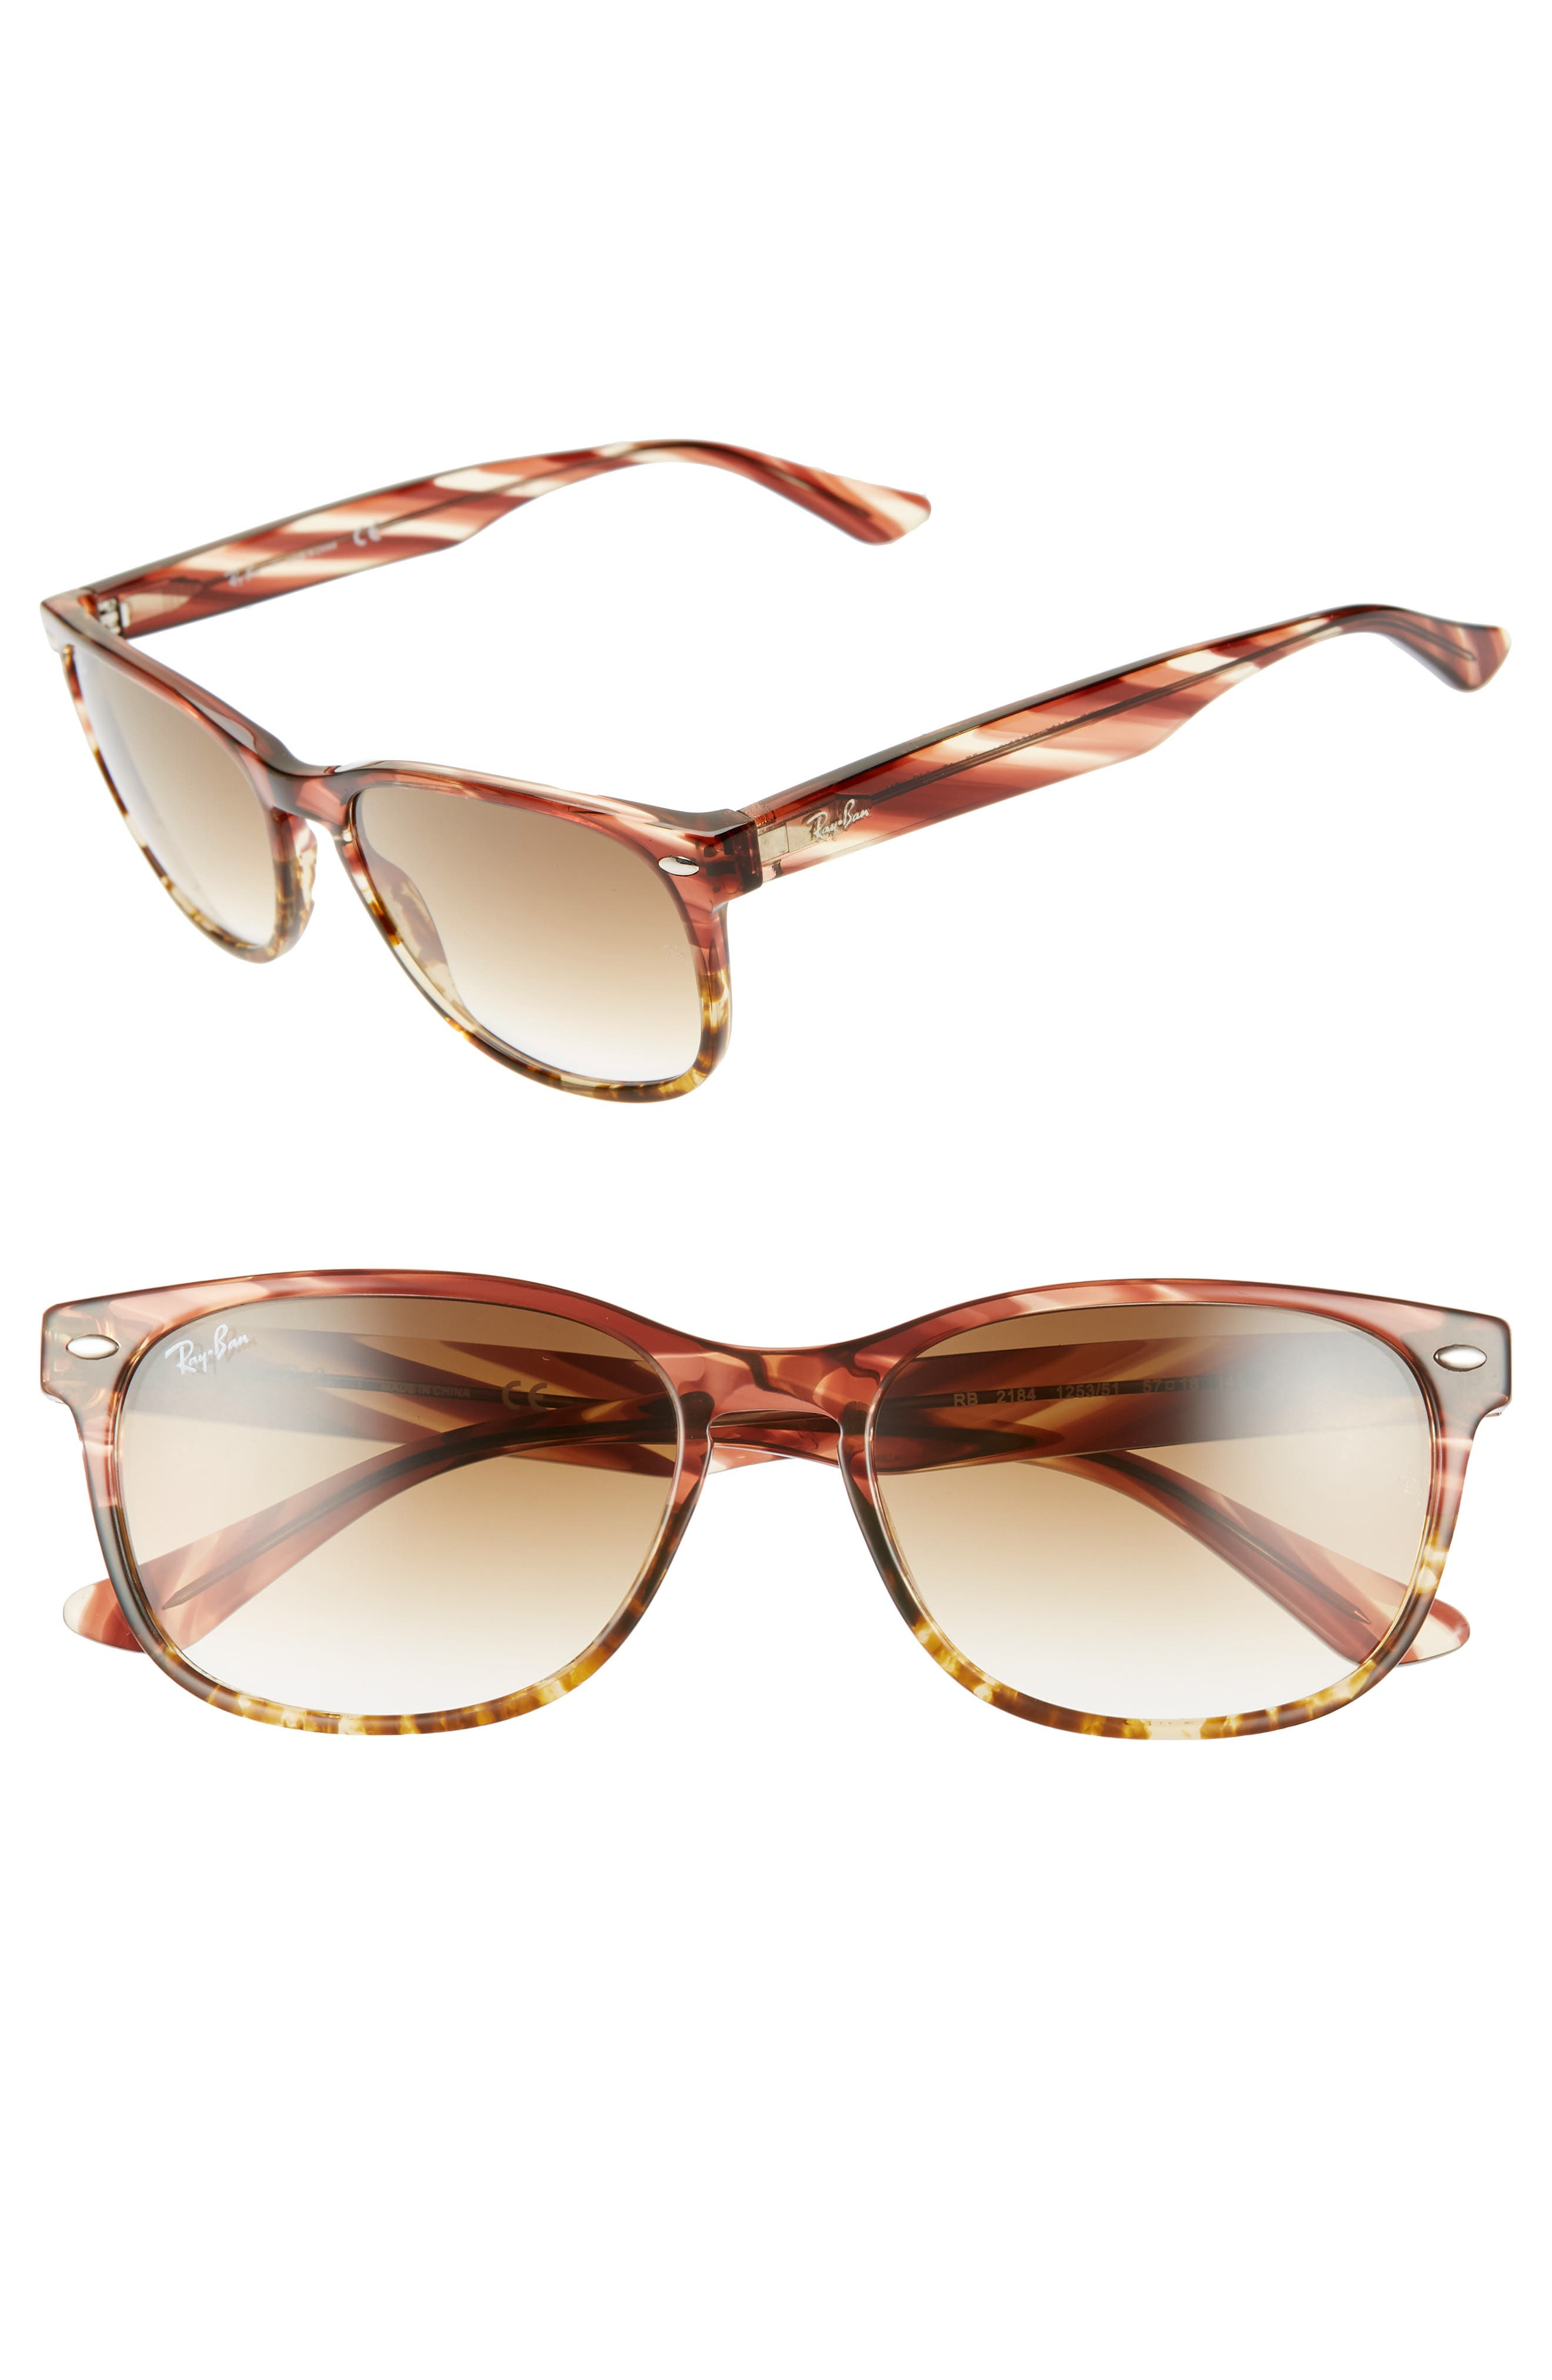 Ray-Ban Highstreet 57Mm Square Sunglasses - Pink/ Brown Gradient